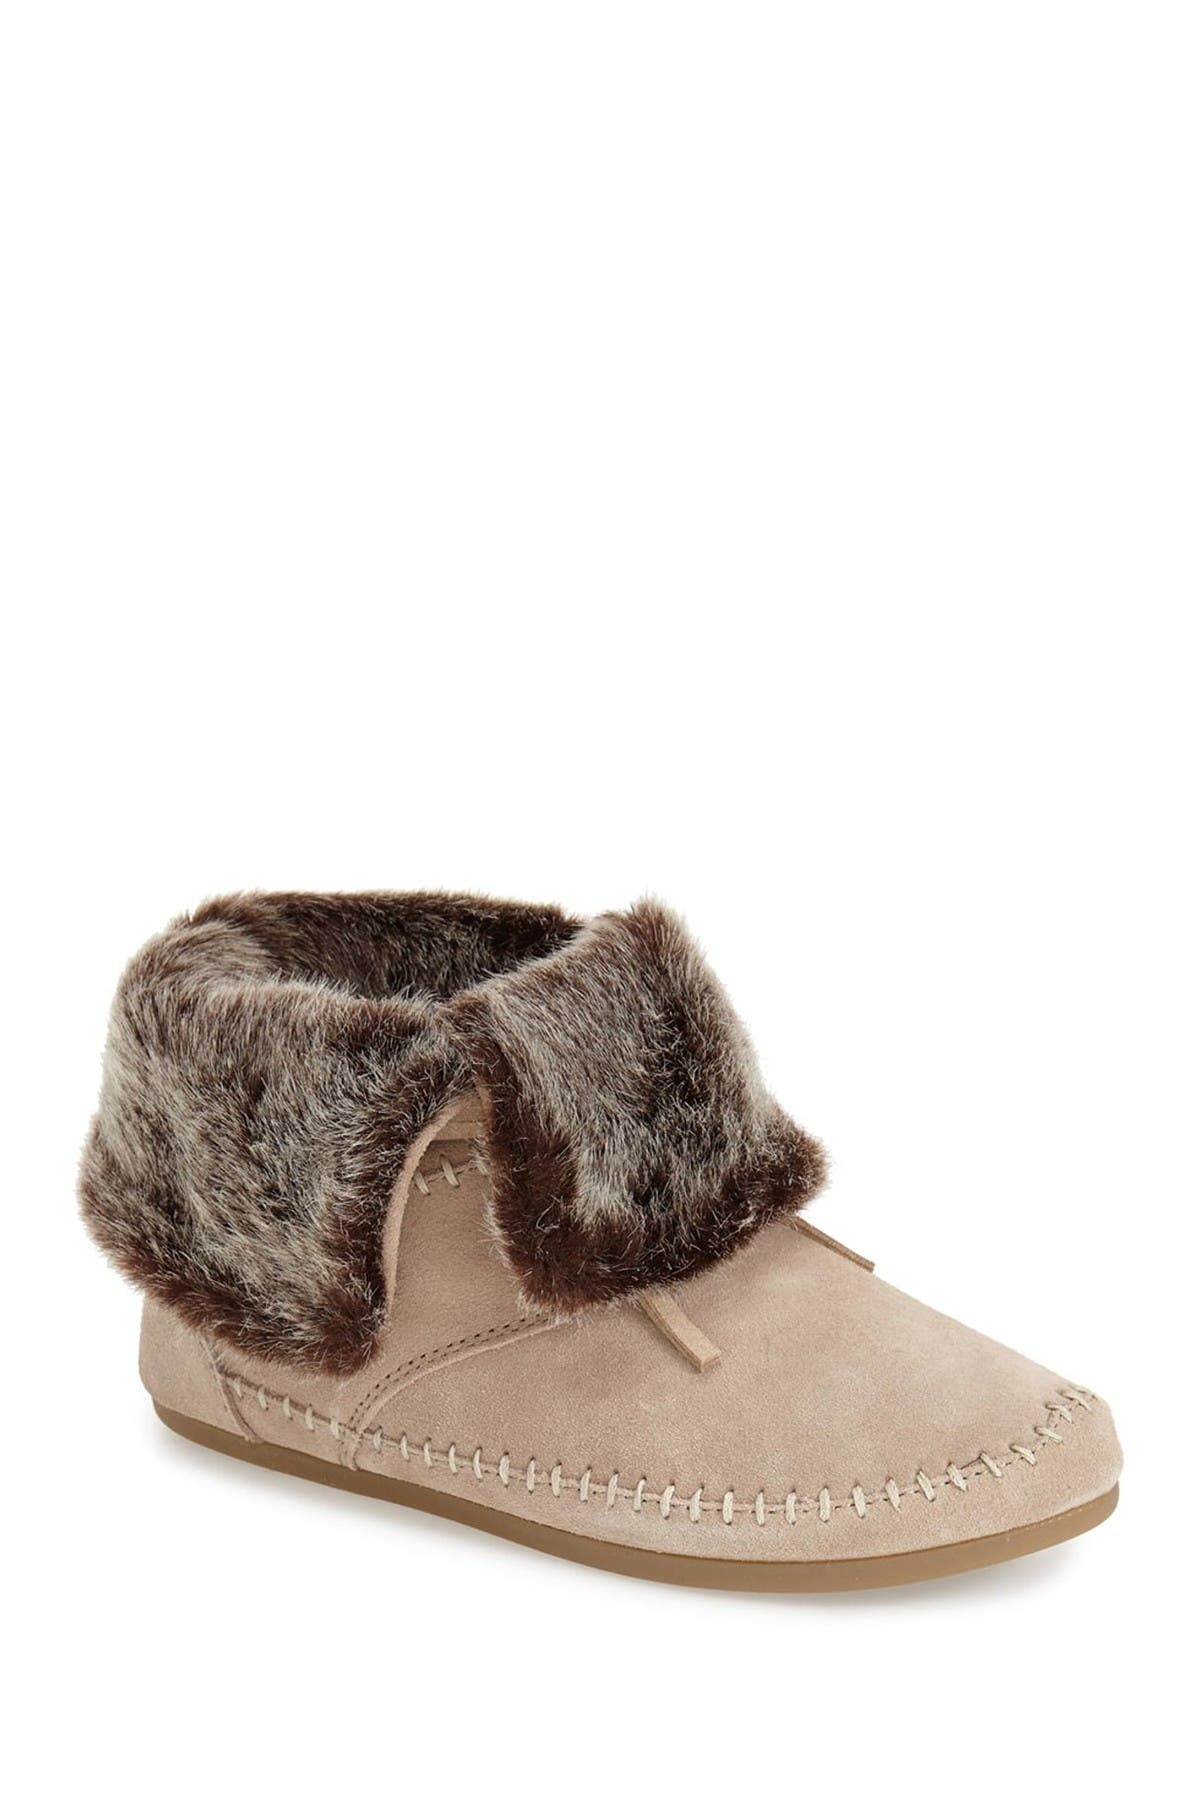 TOMS | Zahara Suede Bootie with Faux